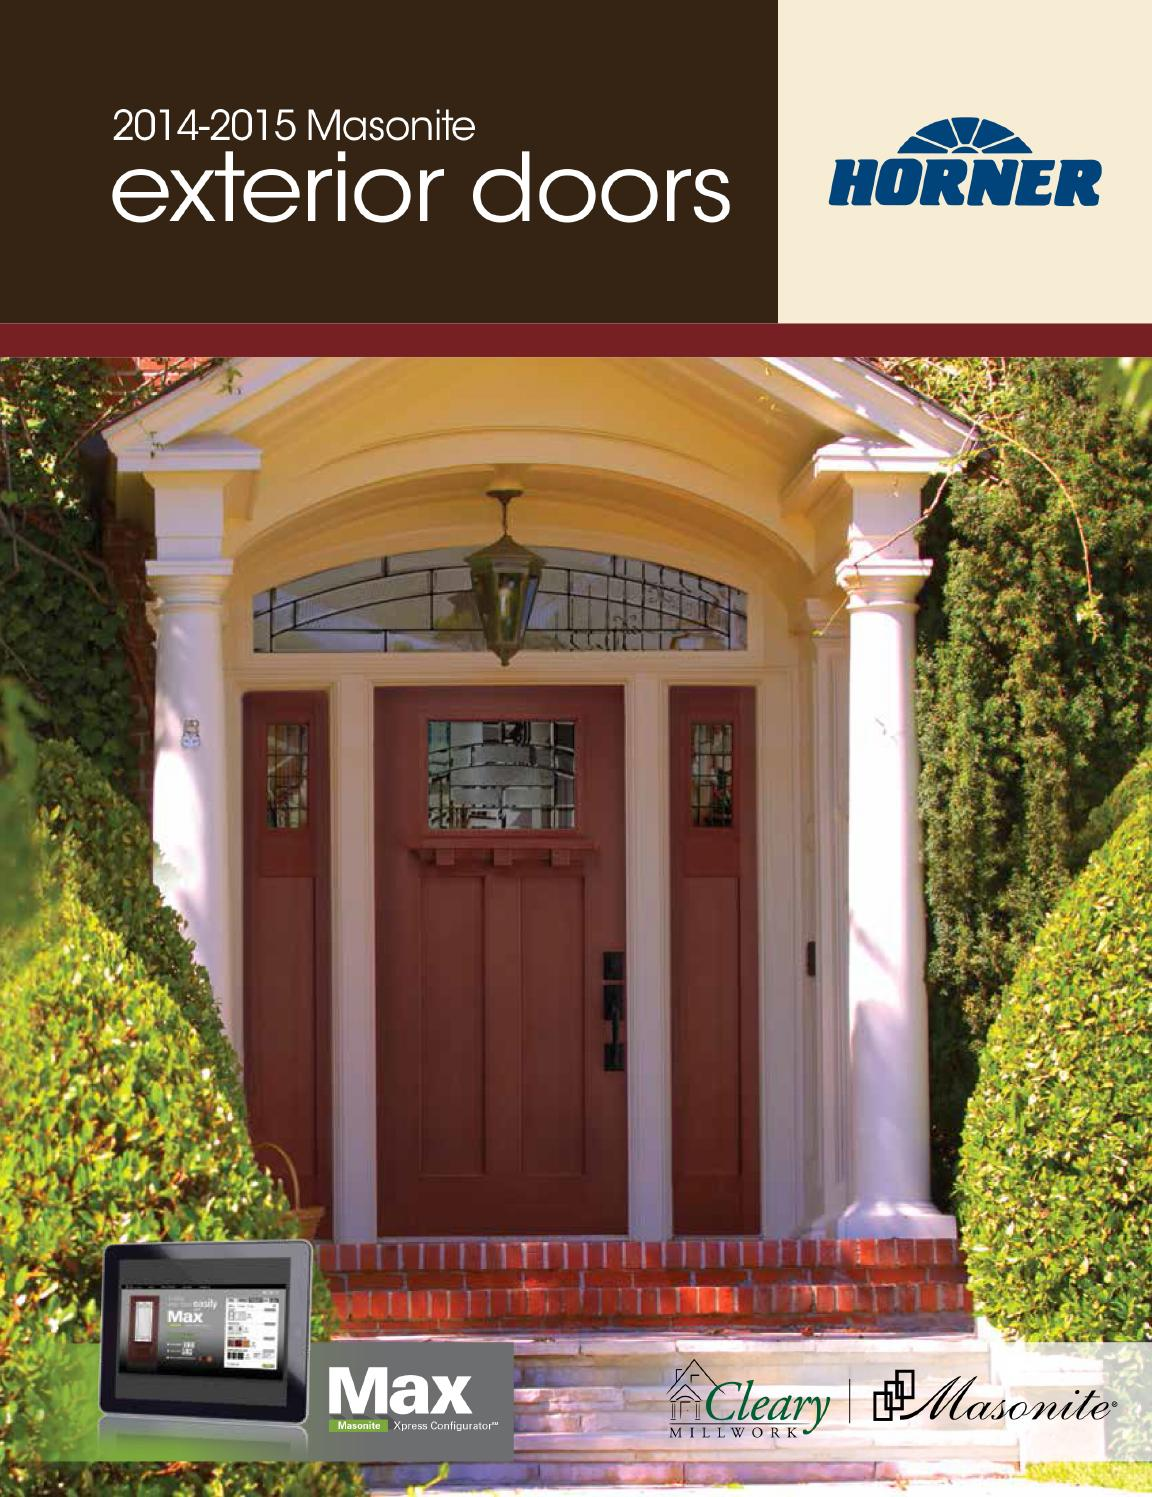 Masonite Steel Fiberglass Exterior Door Full Line